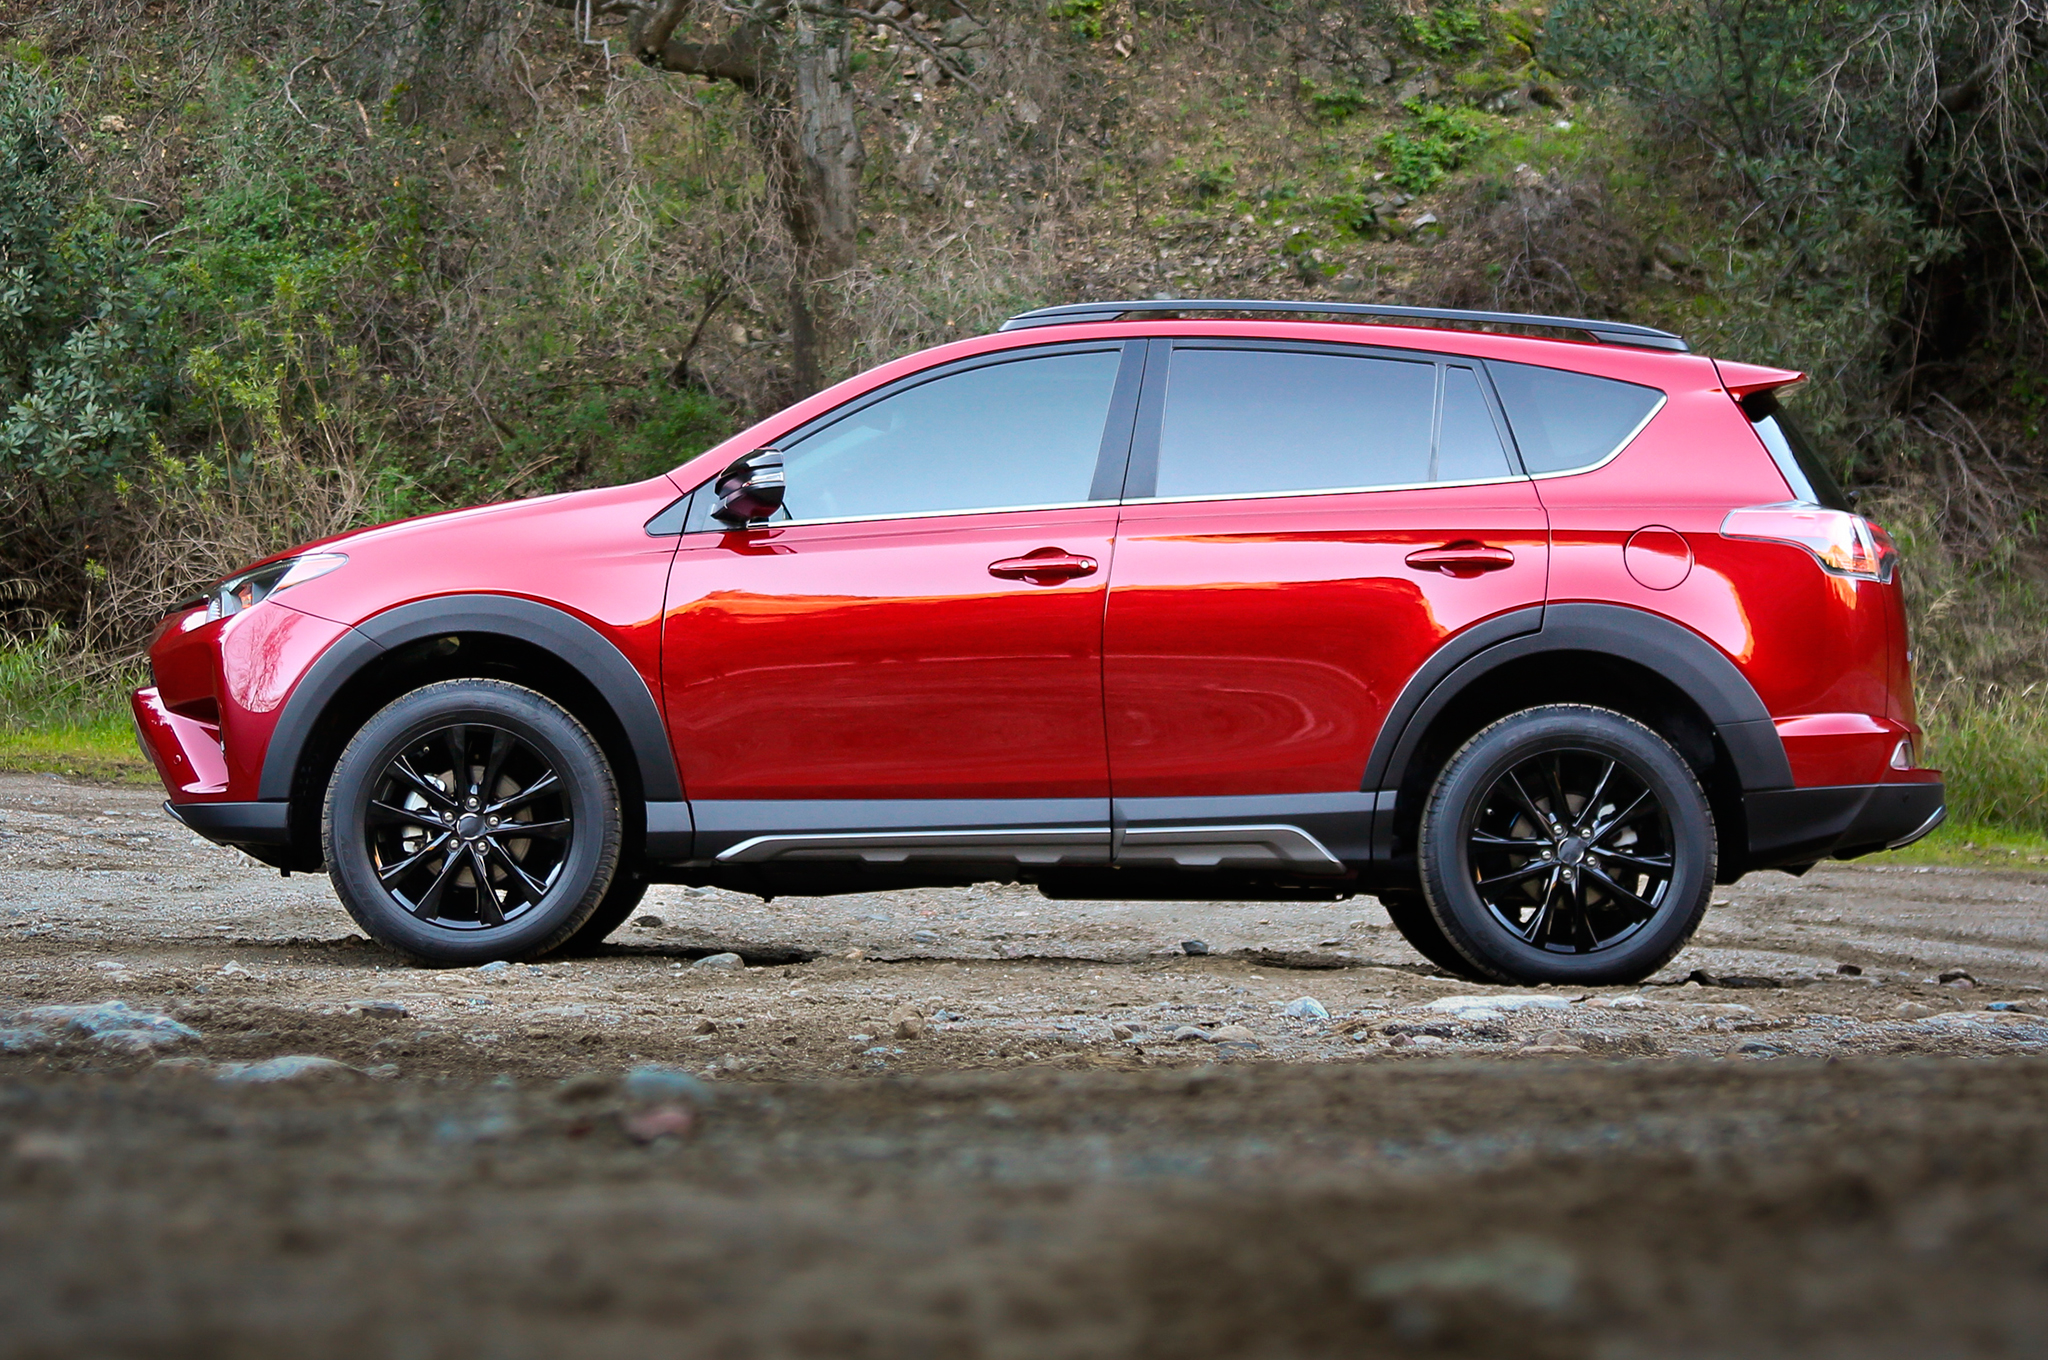 2019 Toyota Rav4 Price Specs Engine Interior Design